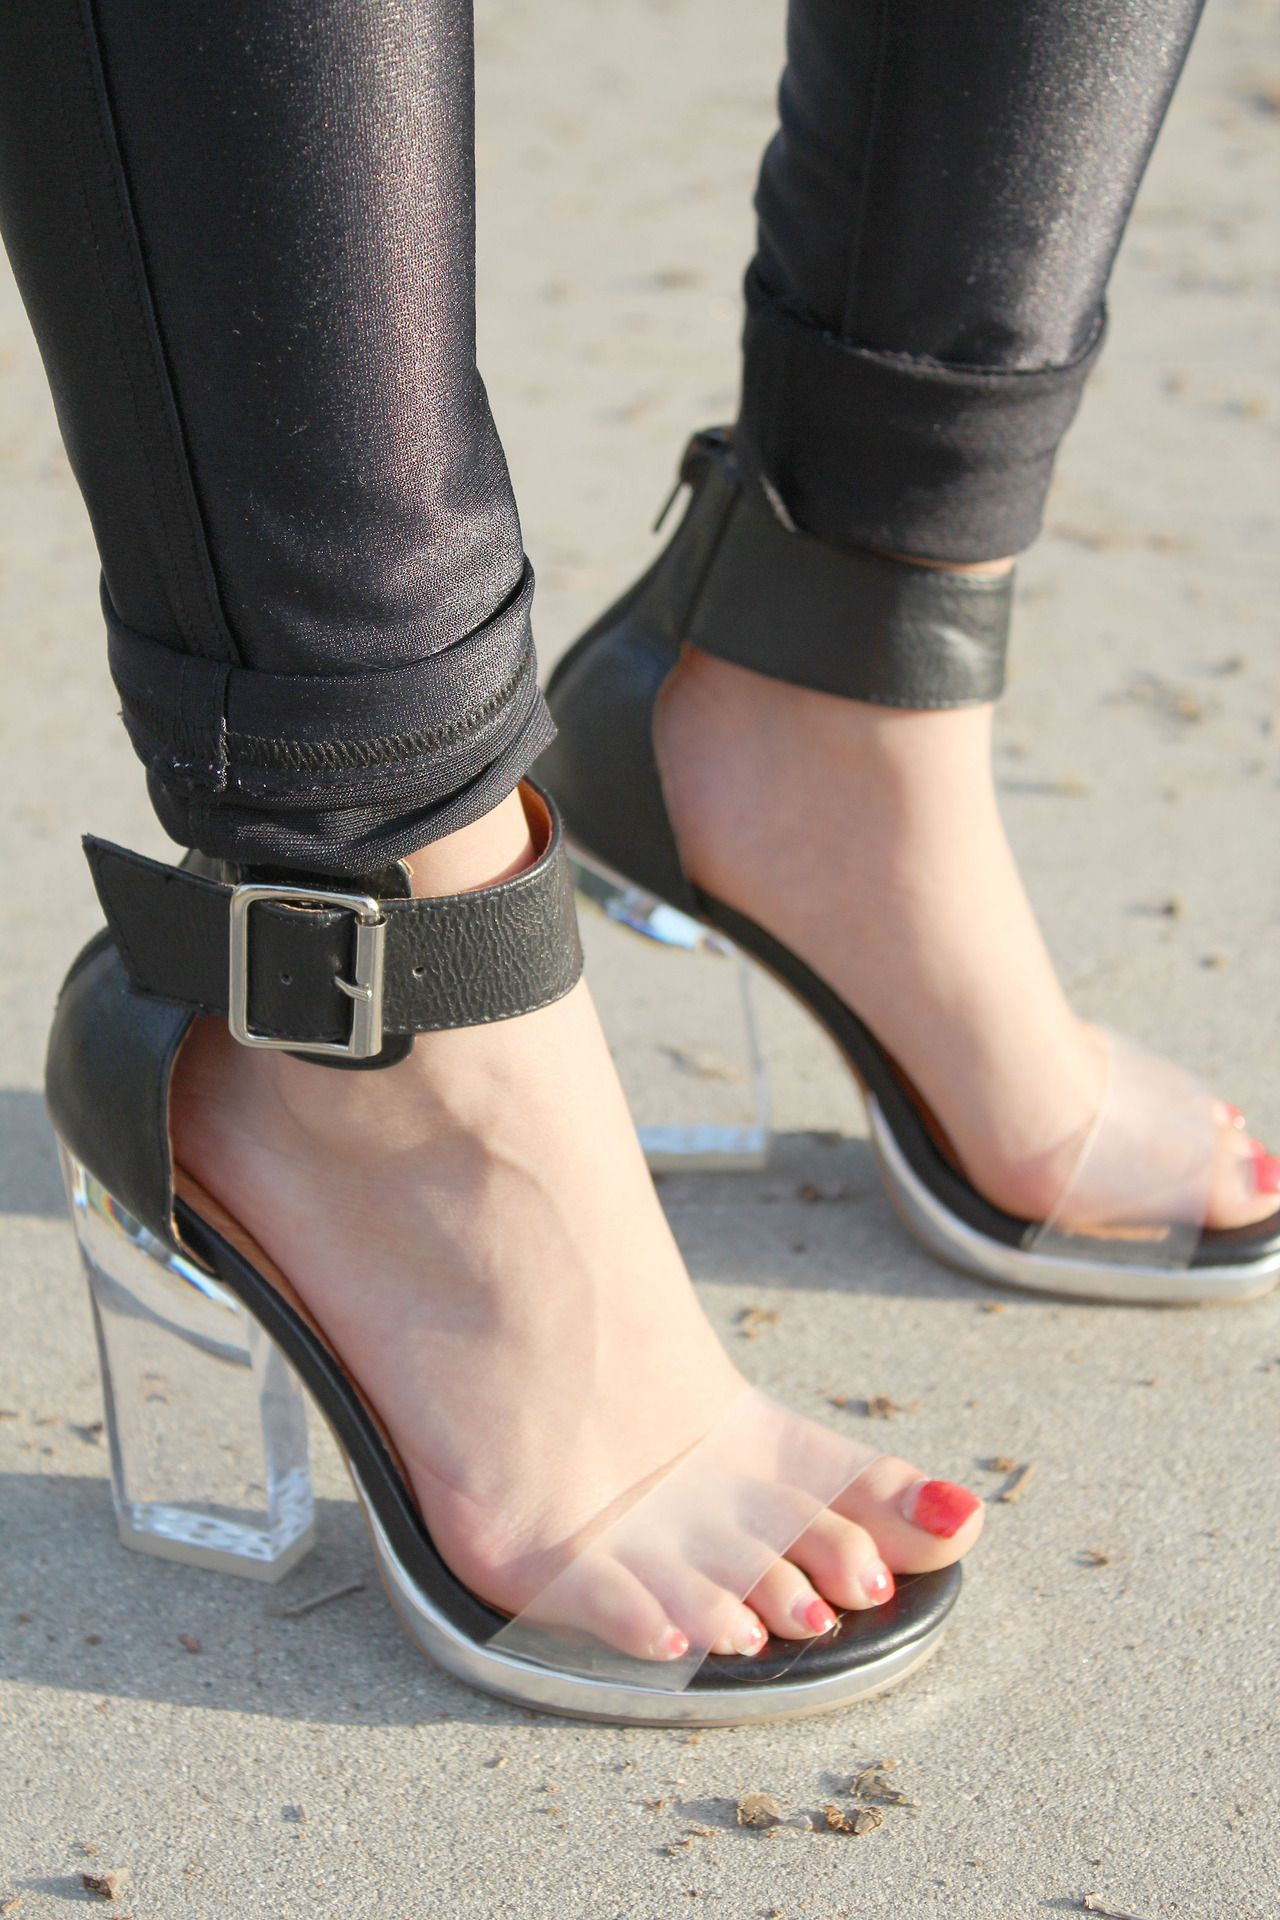 e4769daf982 perspex heel & clear straps | Shoes | Shoes, Heels, Clear shoes